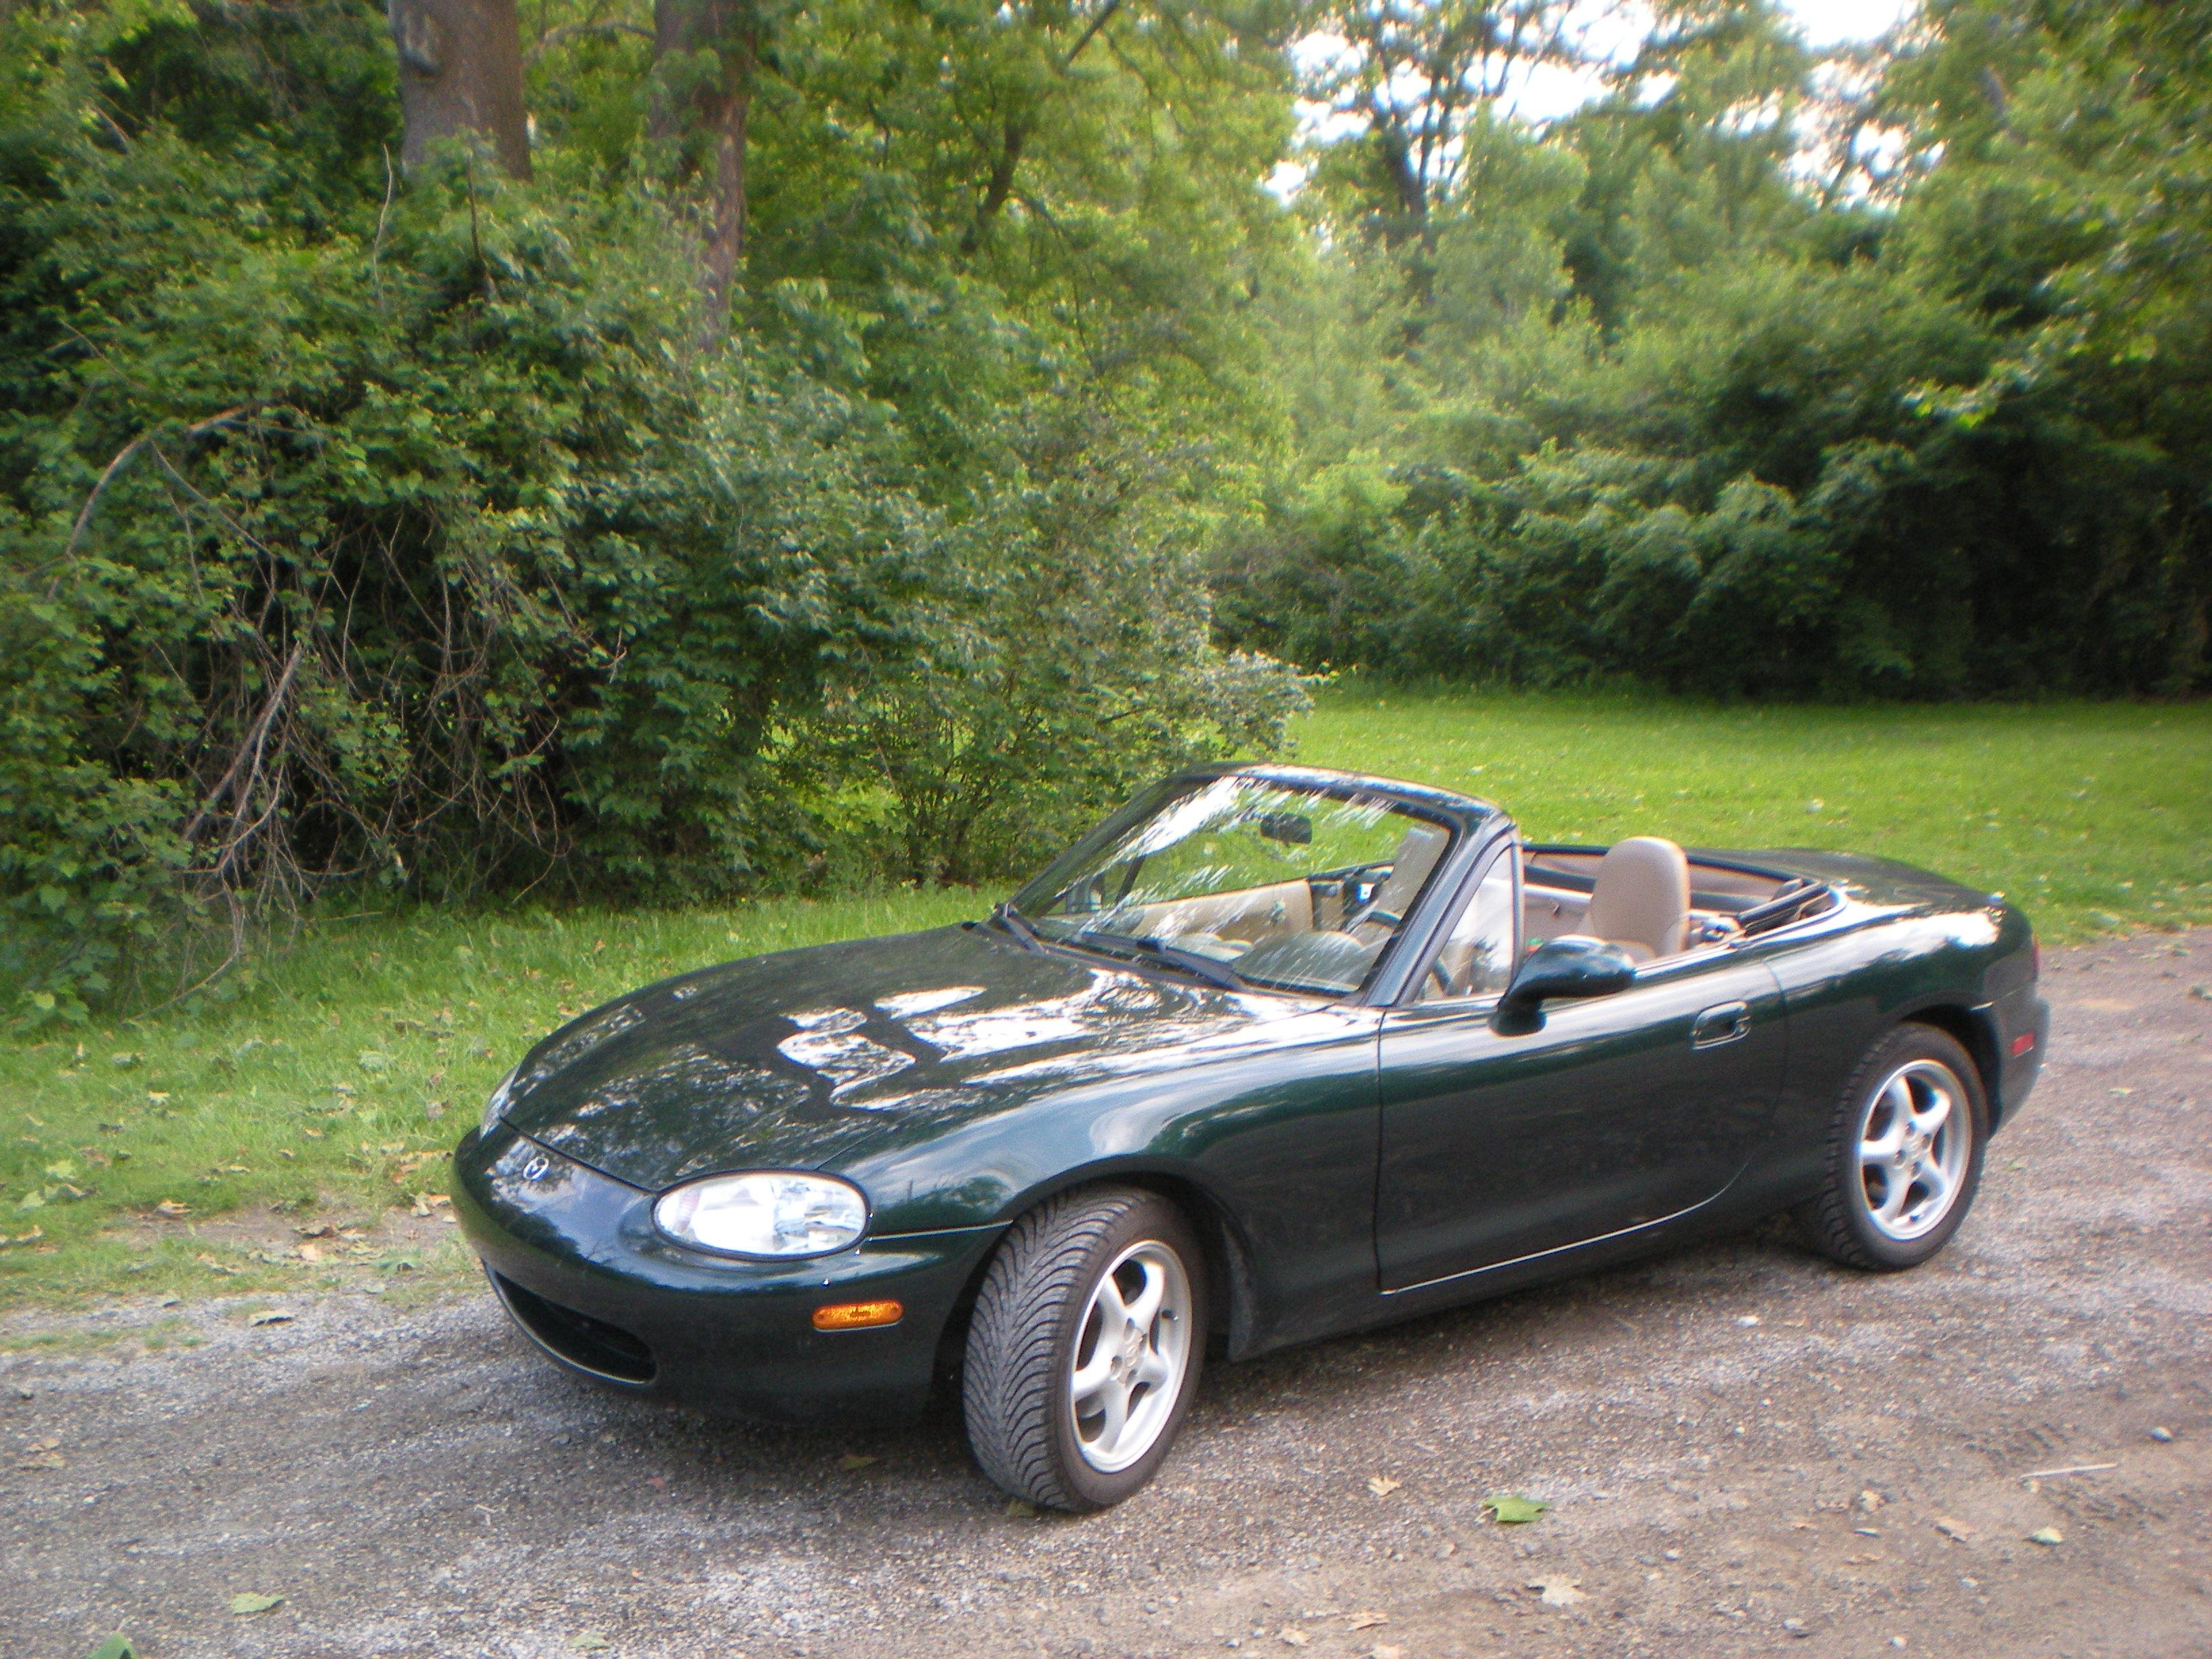 halonhorns2002 39 s 1999 mazda miata mx 5 in livonia mi. Black Bedroom Furniture Sets. Home Design Ideas